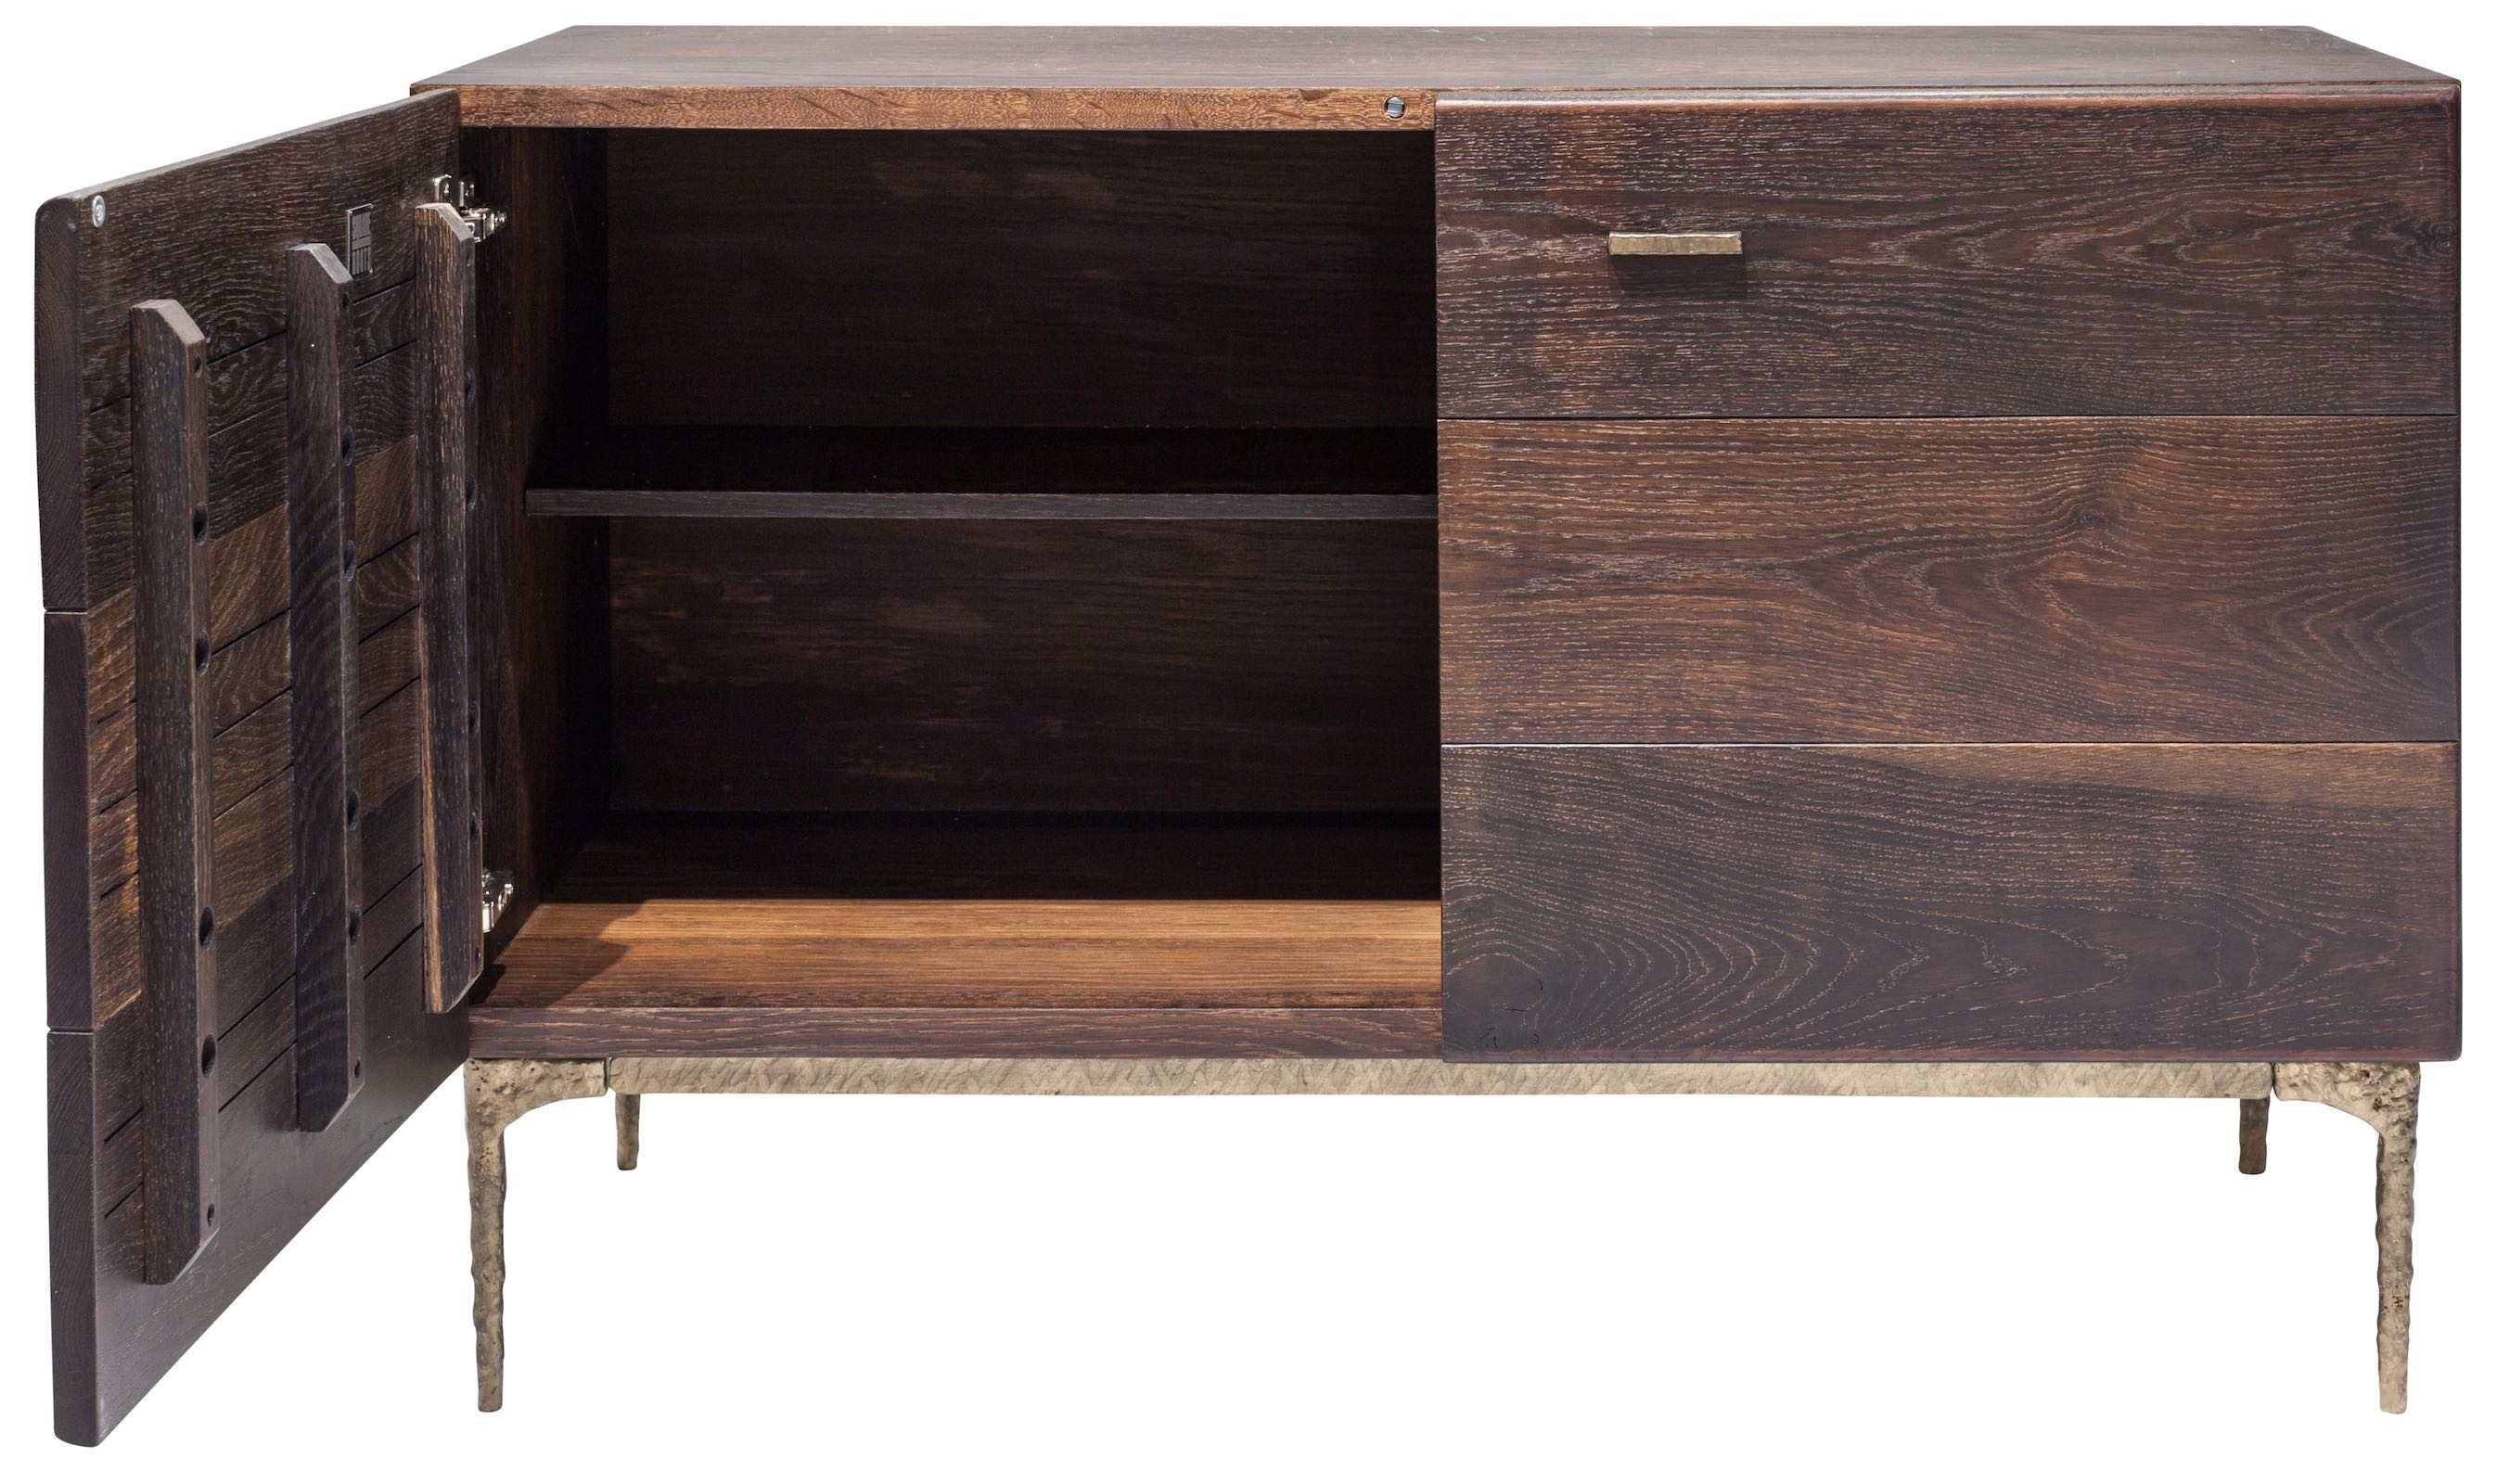 The Kulu Sideboard Buffet With Blackened Cast Iron Legs Features Fsc with regard to Black Oak Wood and Wrought Iron Sideboards (Image 28 of 30)